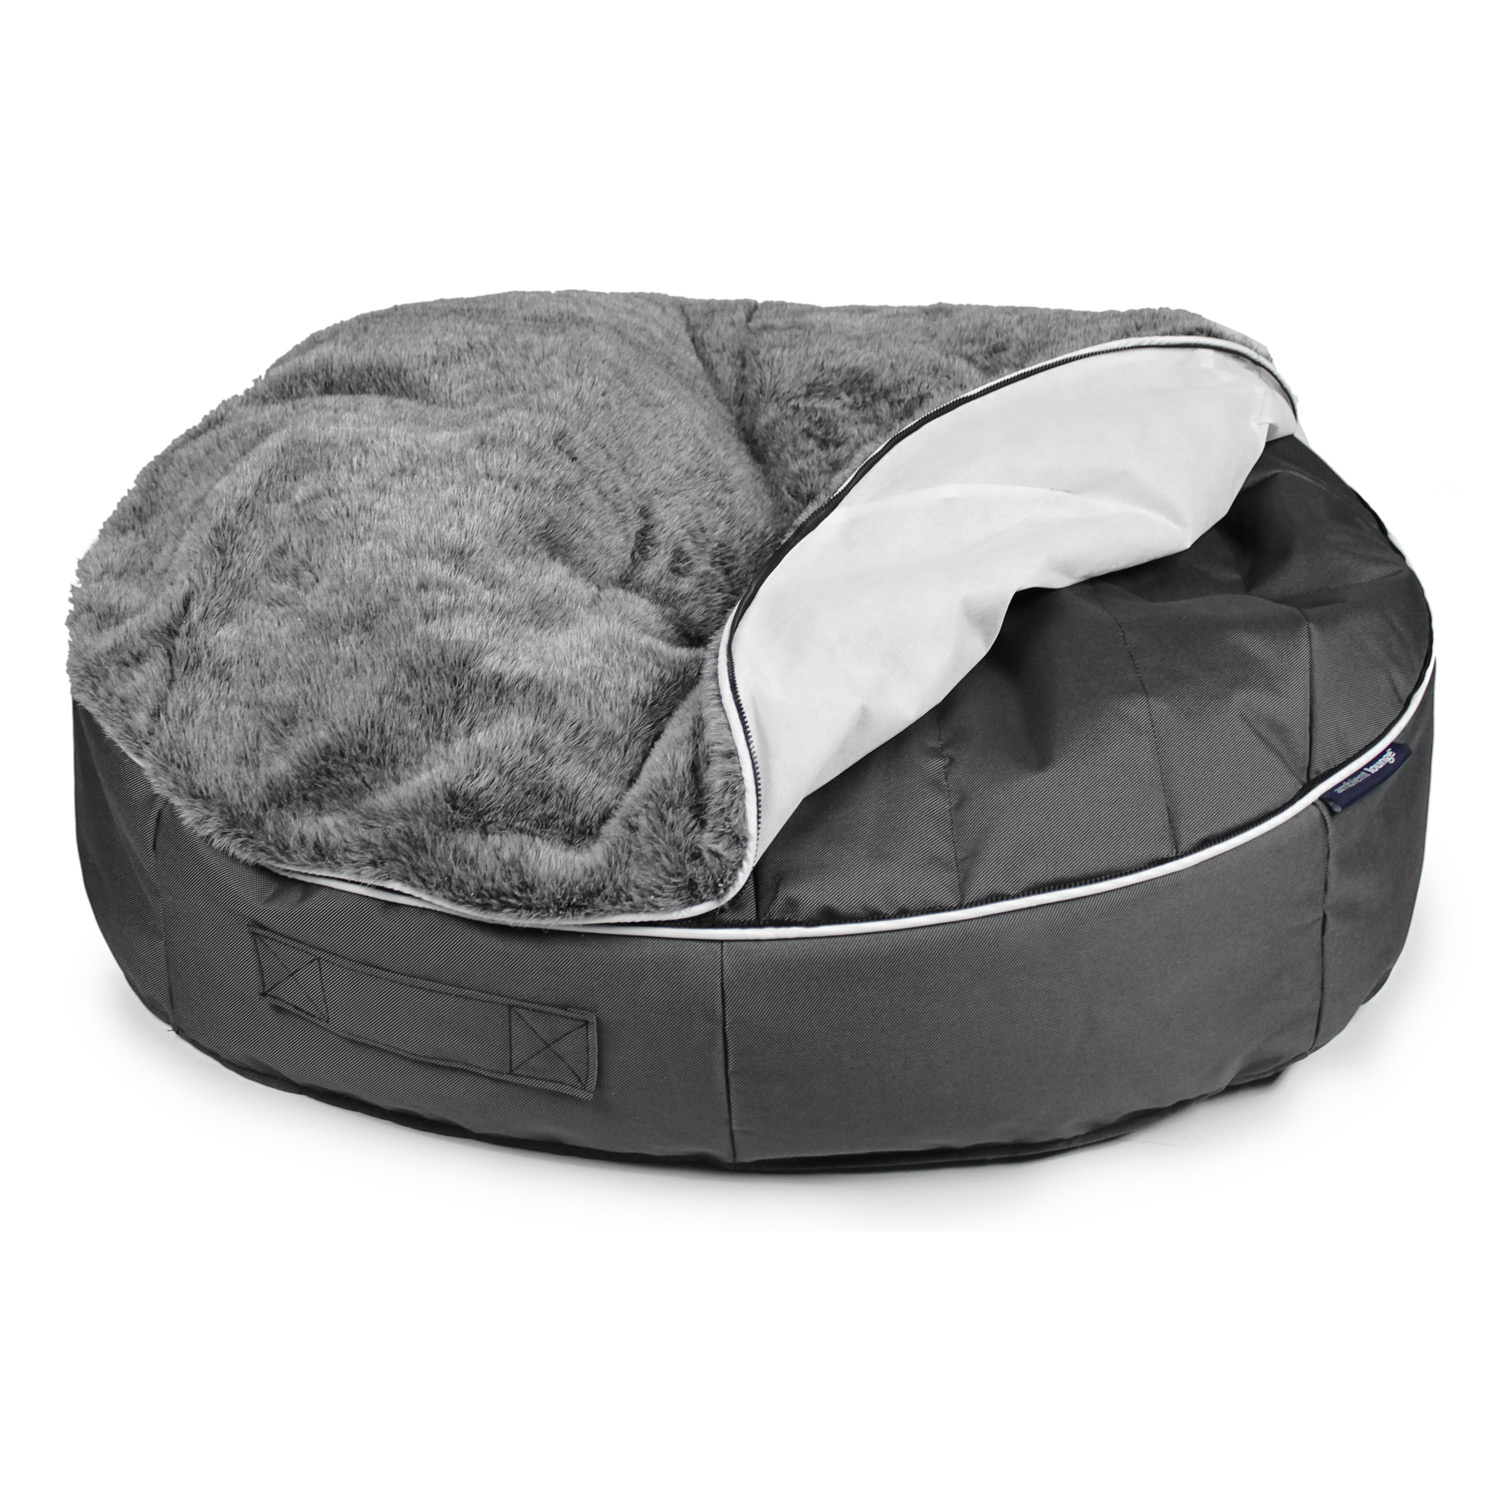 Indoor Dog Beds For Small Dogs